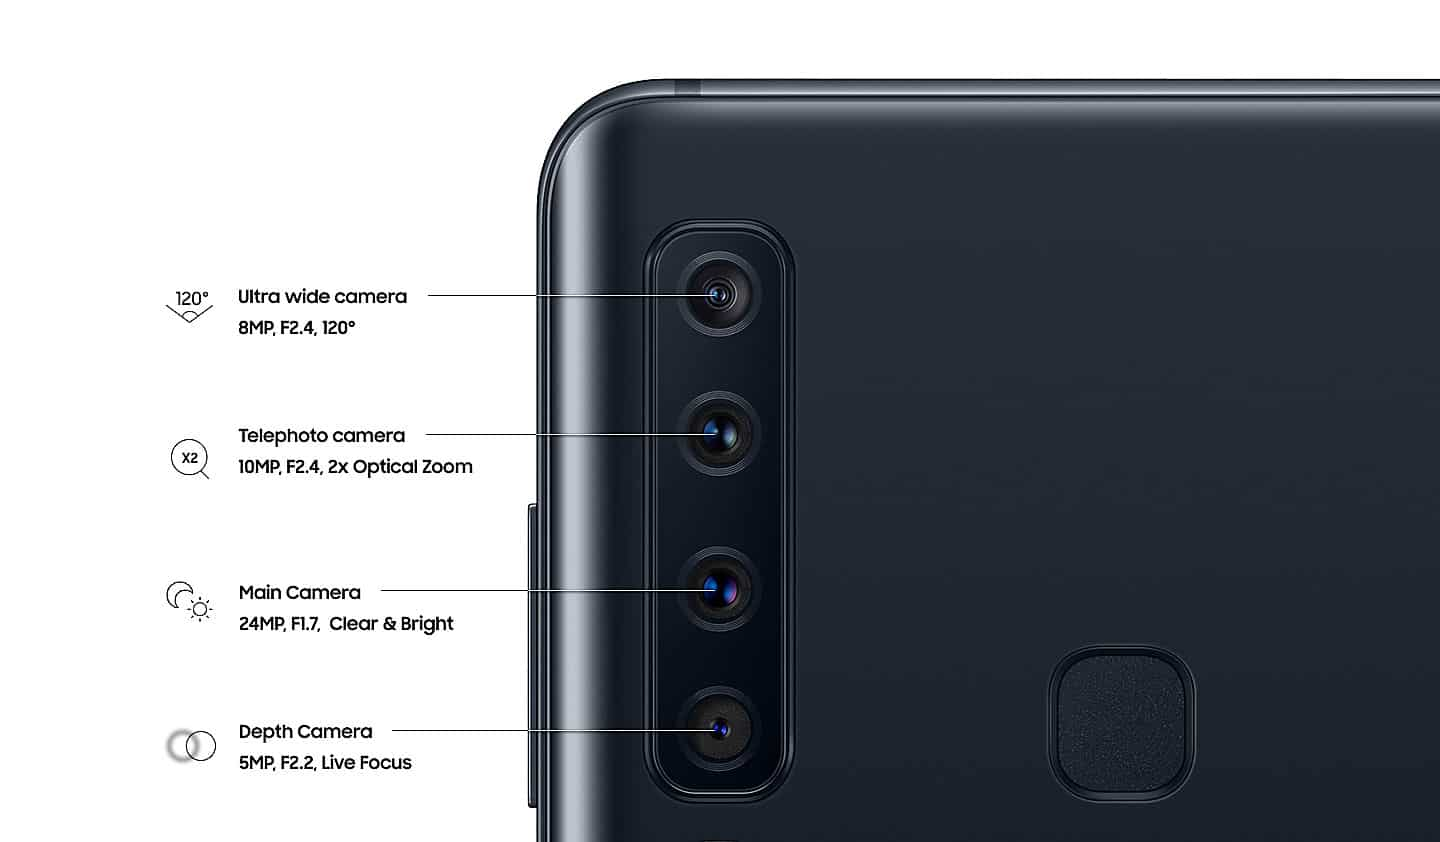 Samsung Galaxy A9: Camera Specifications